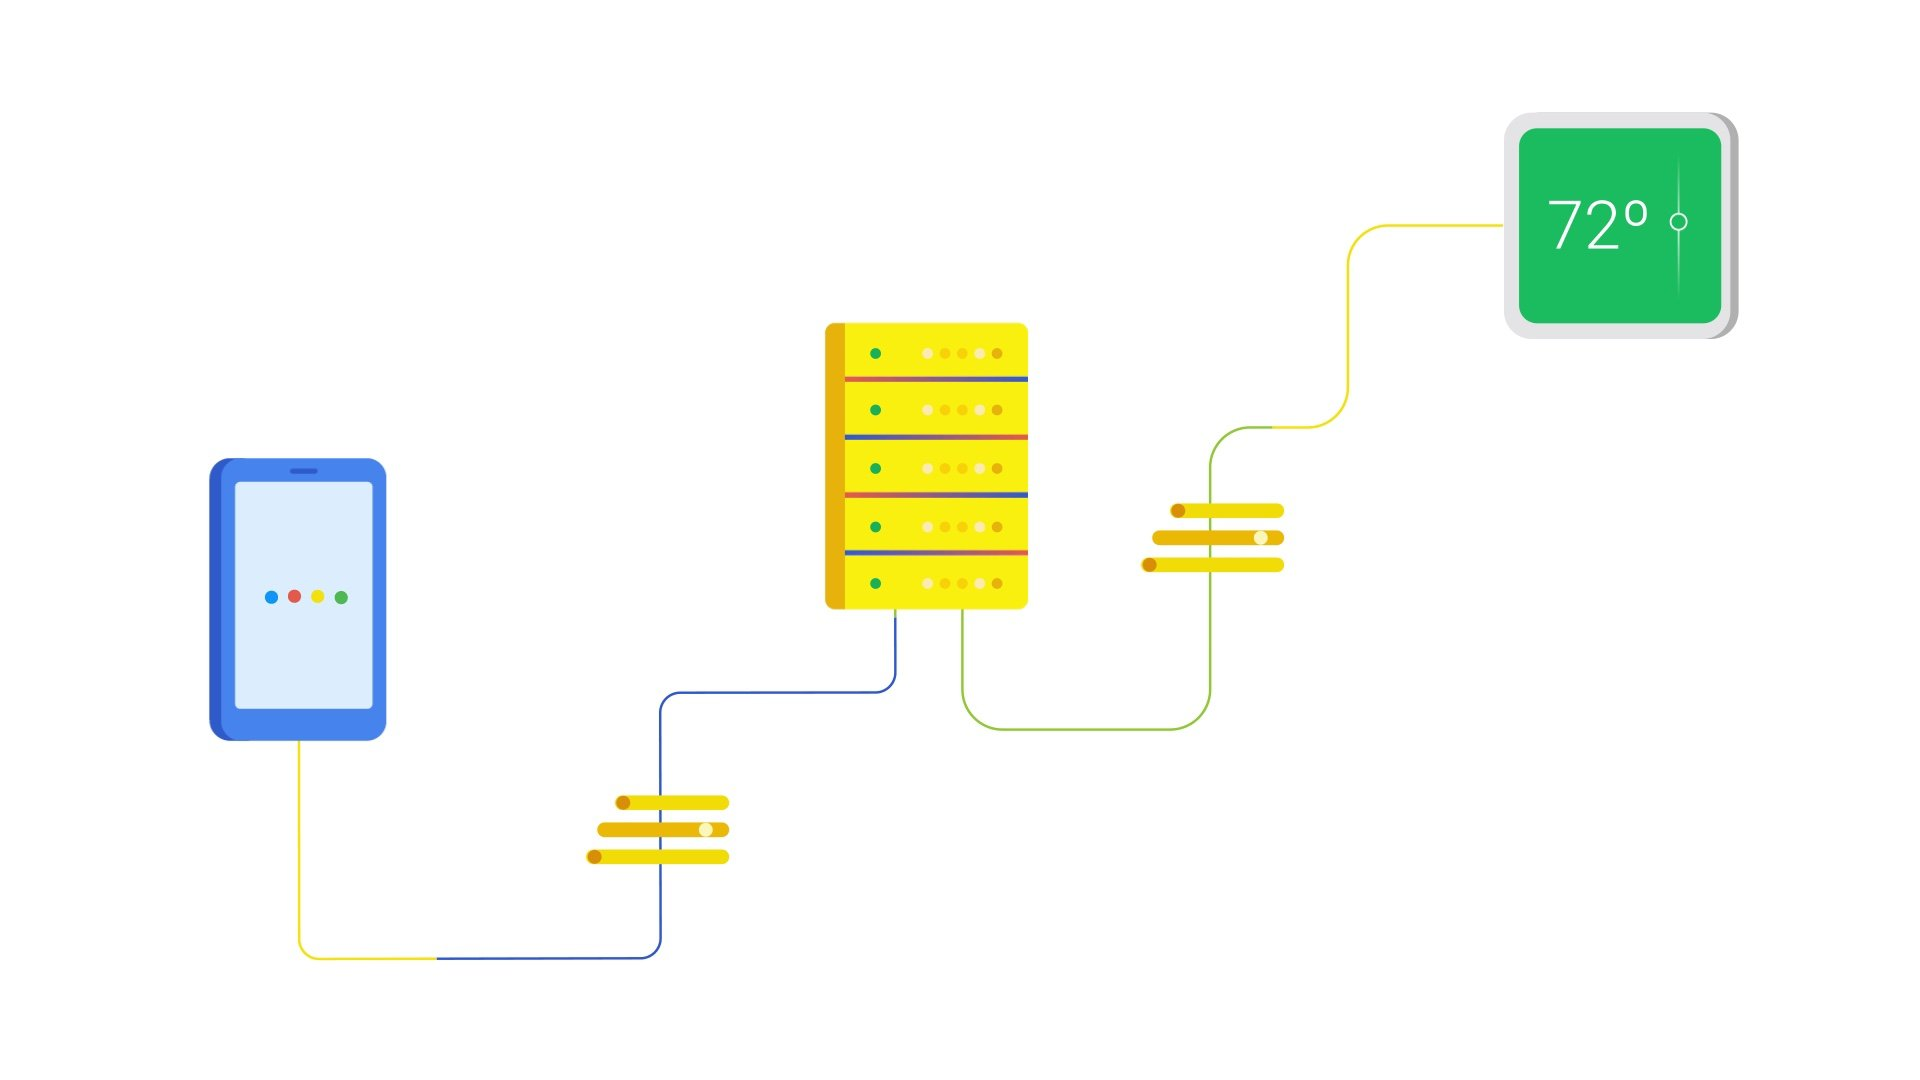 illustration for an animation of Apigee, a Google Cloud Service. It shows a machine